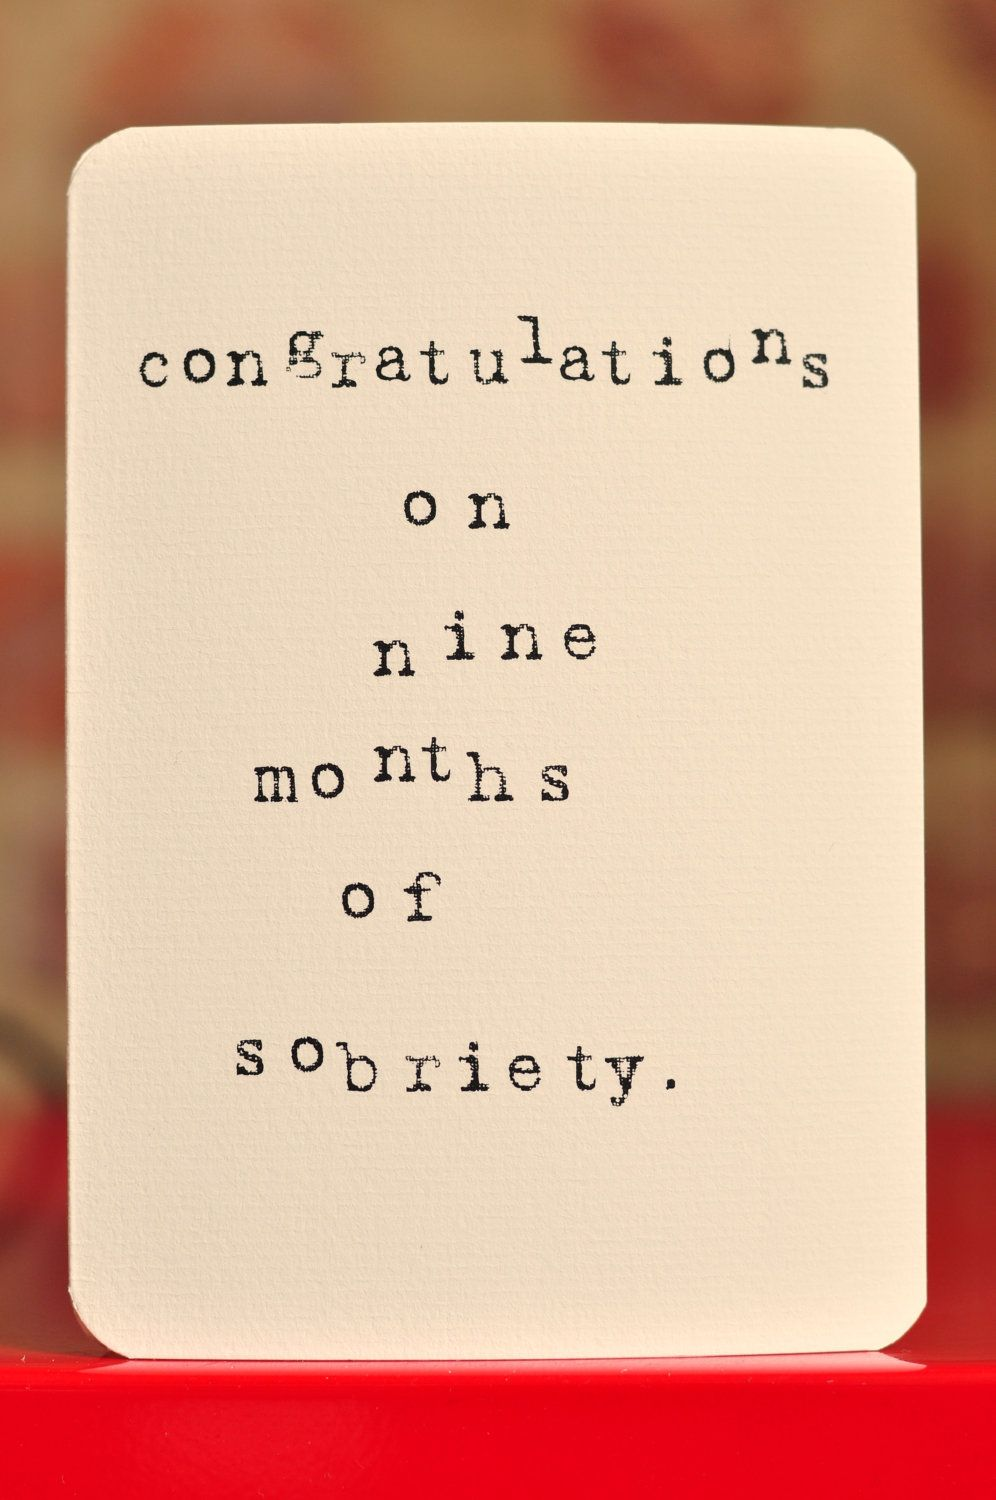 Mardy mabel pregnancy congratulations card congratulations on mardy mabel pregnancy congratulations card congratulations on nine months of sobriety kristyandbryce Image collections